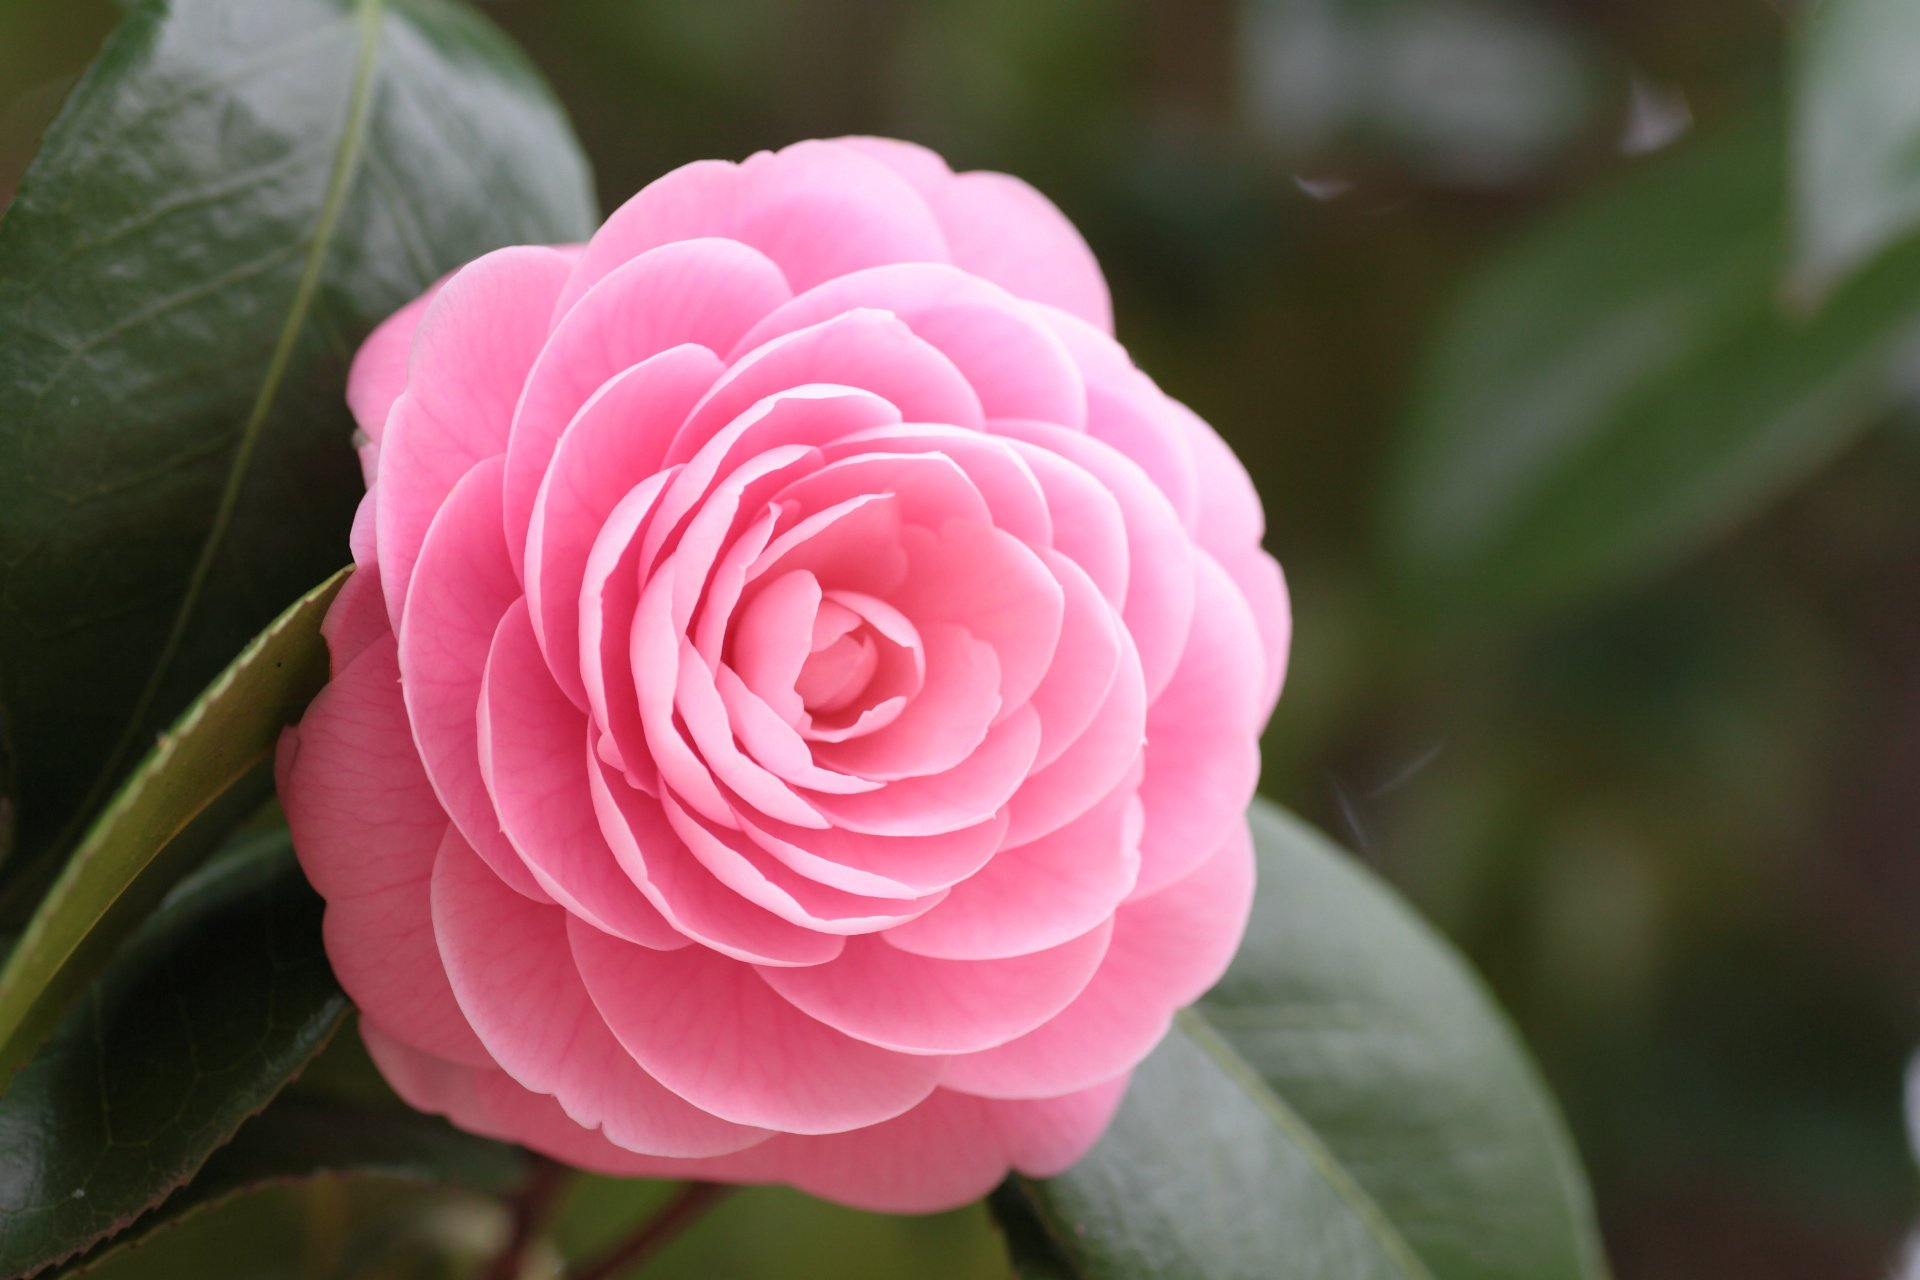 27 camellia hd wallpapers background images wallpaper abyss hd wallpaper background image id367205 mightylinksfo